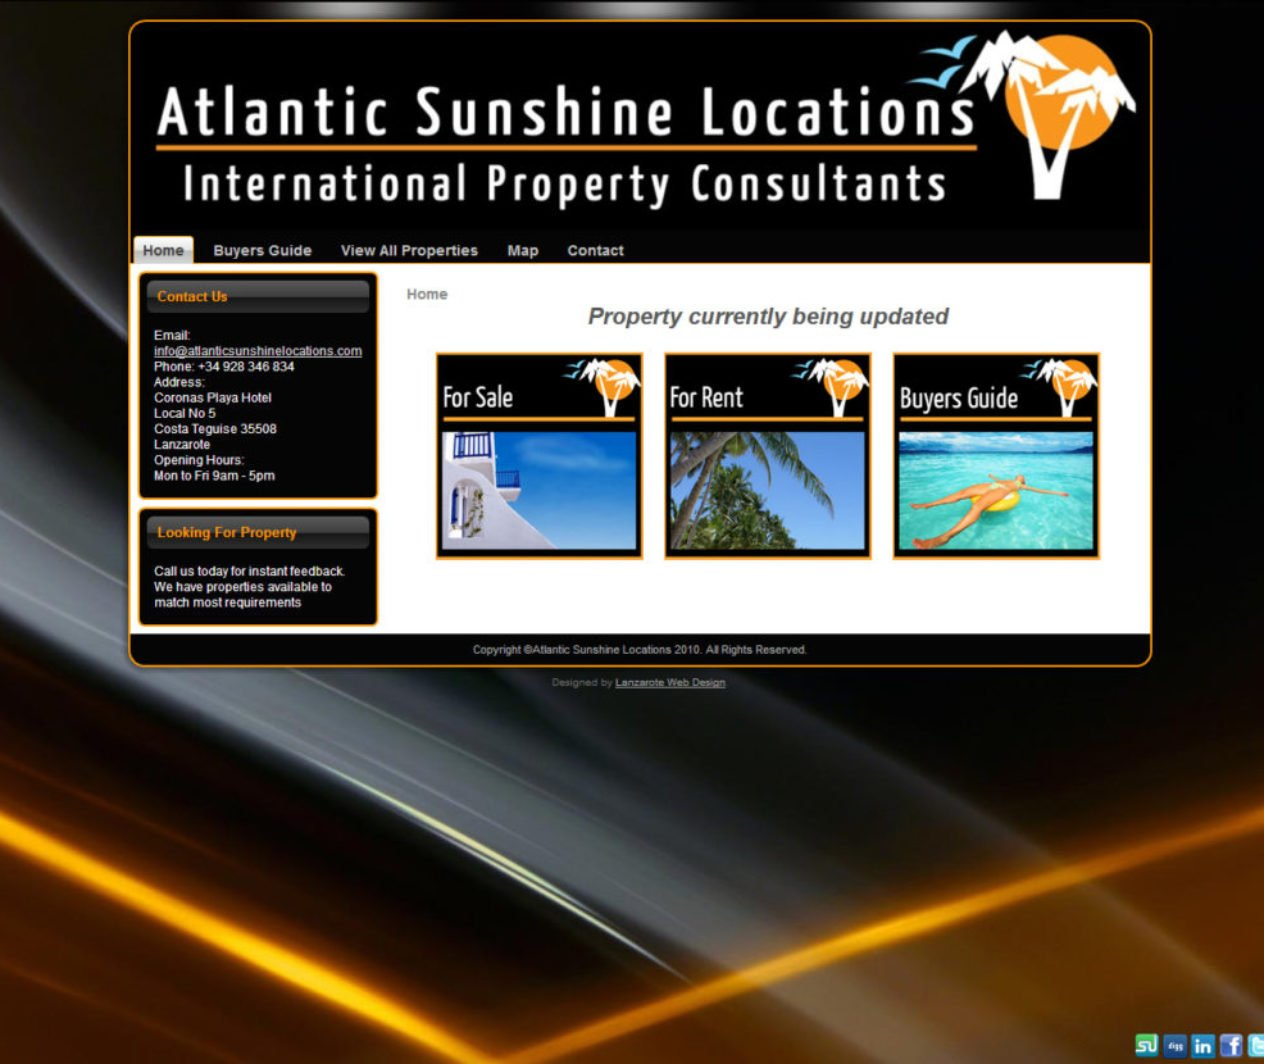 Atlantic Sunshine Locations